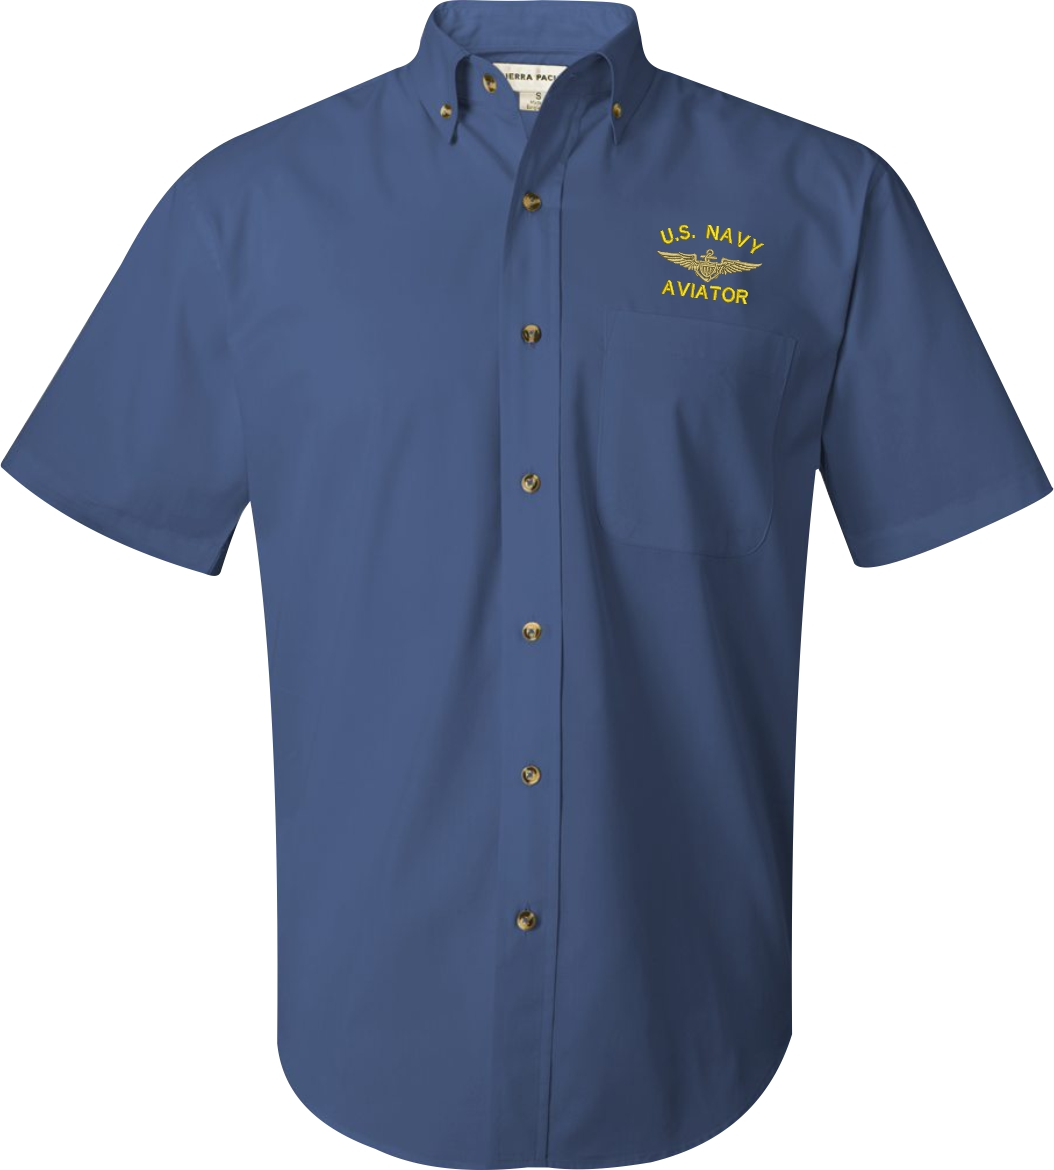 Navy Apparel and Clothing. We are proud to carry Officially Licensed Navy clothing, apparel, and accessories. Our Armed Forces Gear t-shirts, hats, and sweatshirts are among the most popular styles. We also feature brands like Under Armour, Carhartt, Legacy, and Alex and Ani.